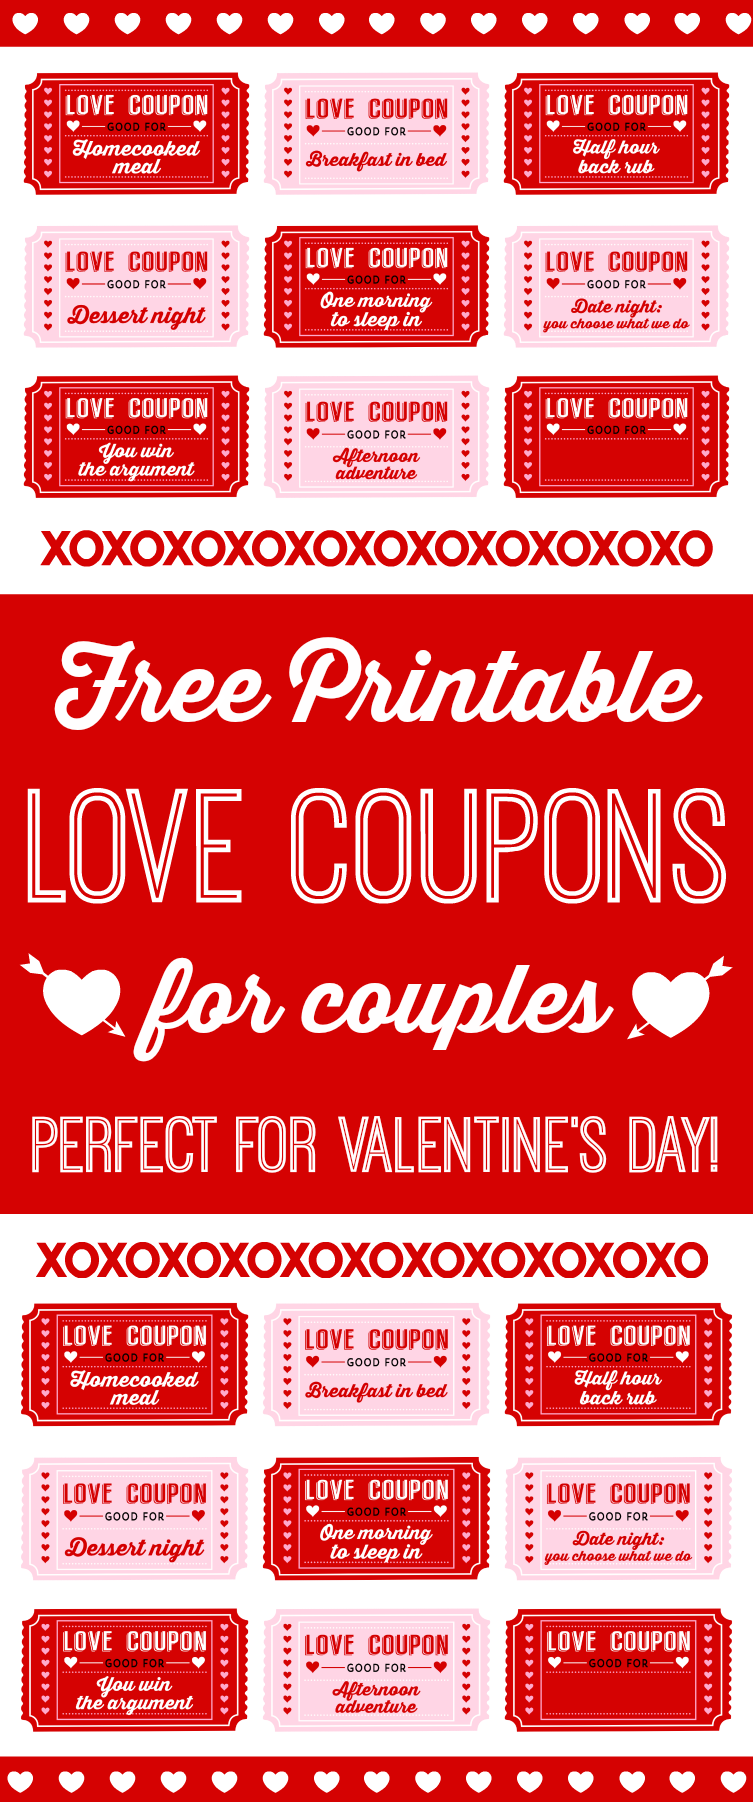 free printable love coupons for couples on valentine's day | catch